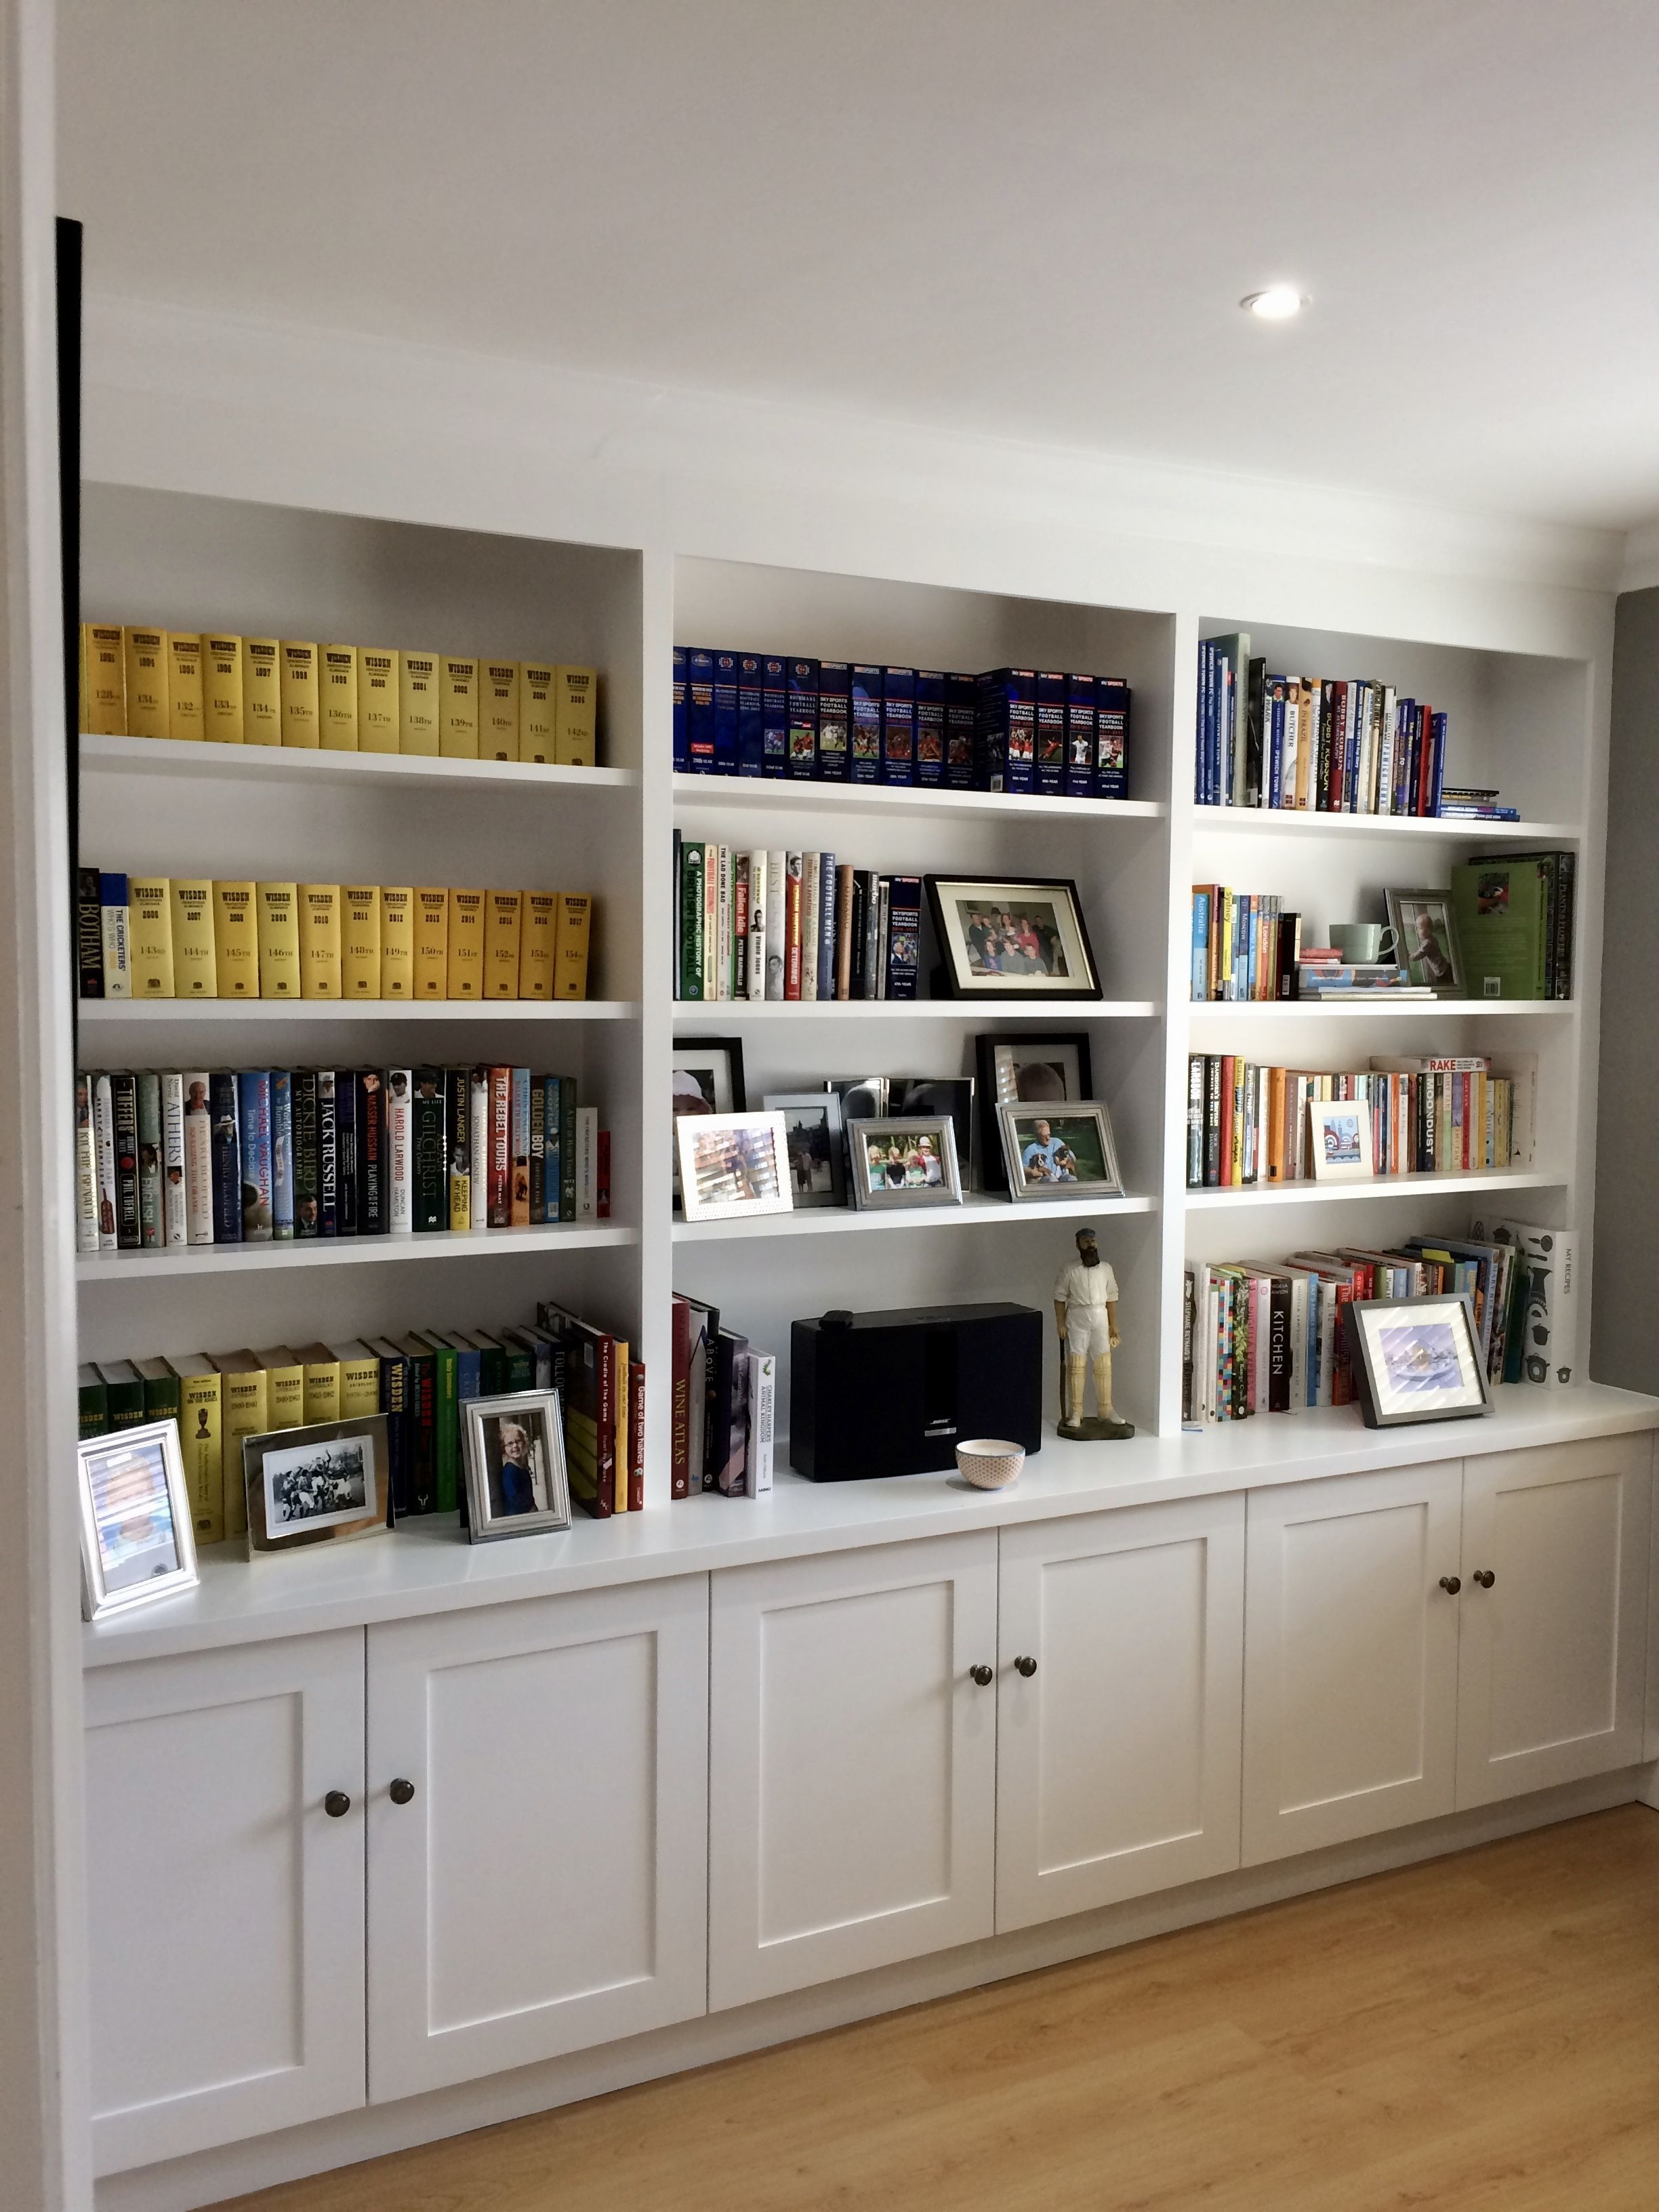 Wall To Wall Shelves custom made bookcases (con imágenes) | muebles de comedor